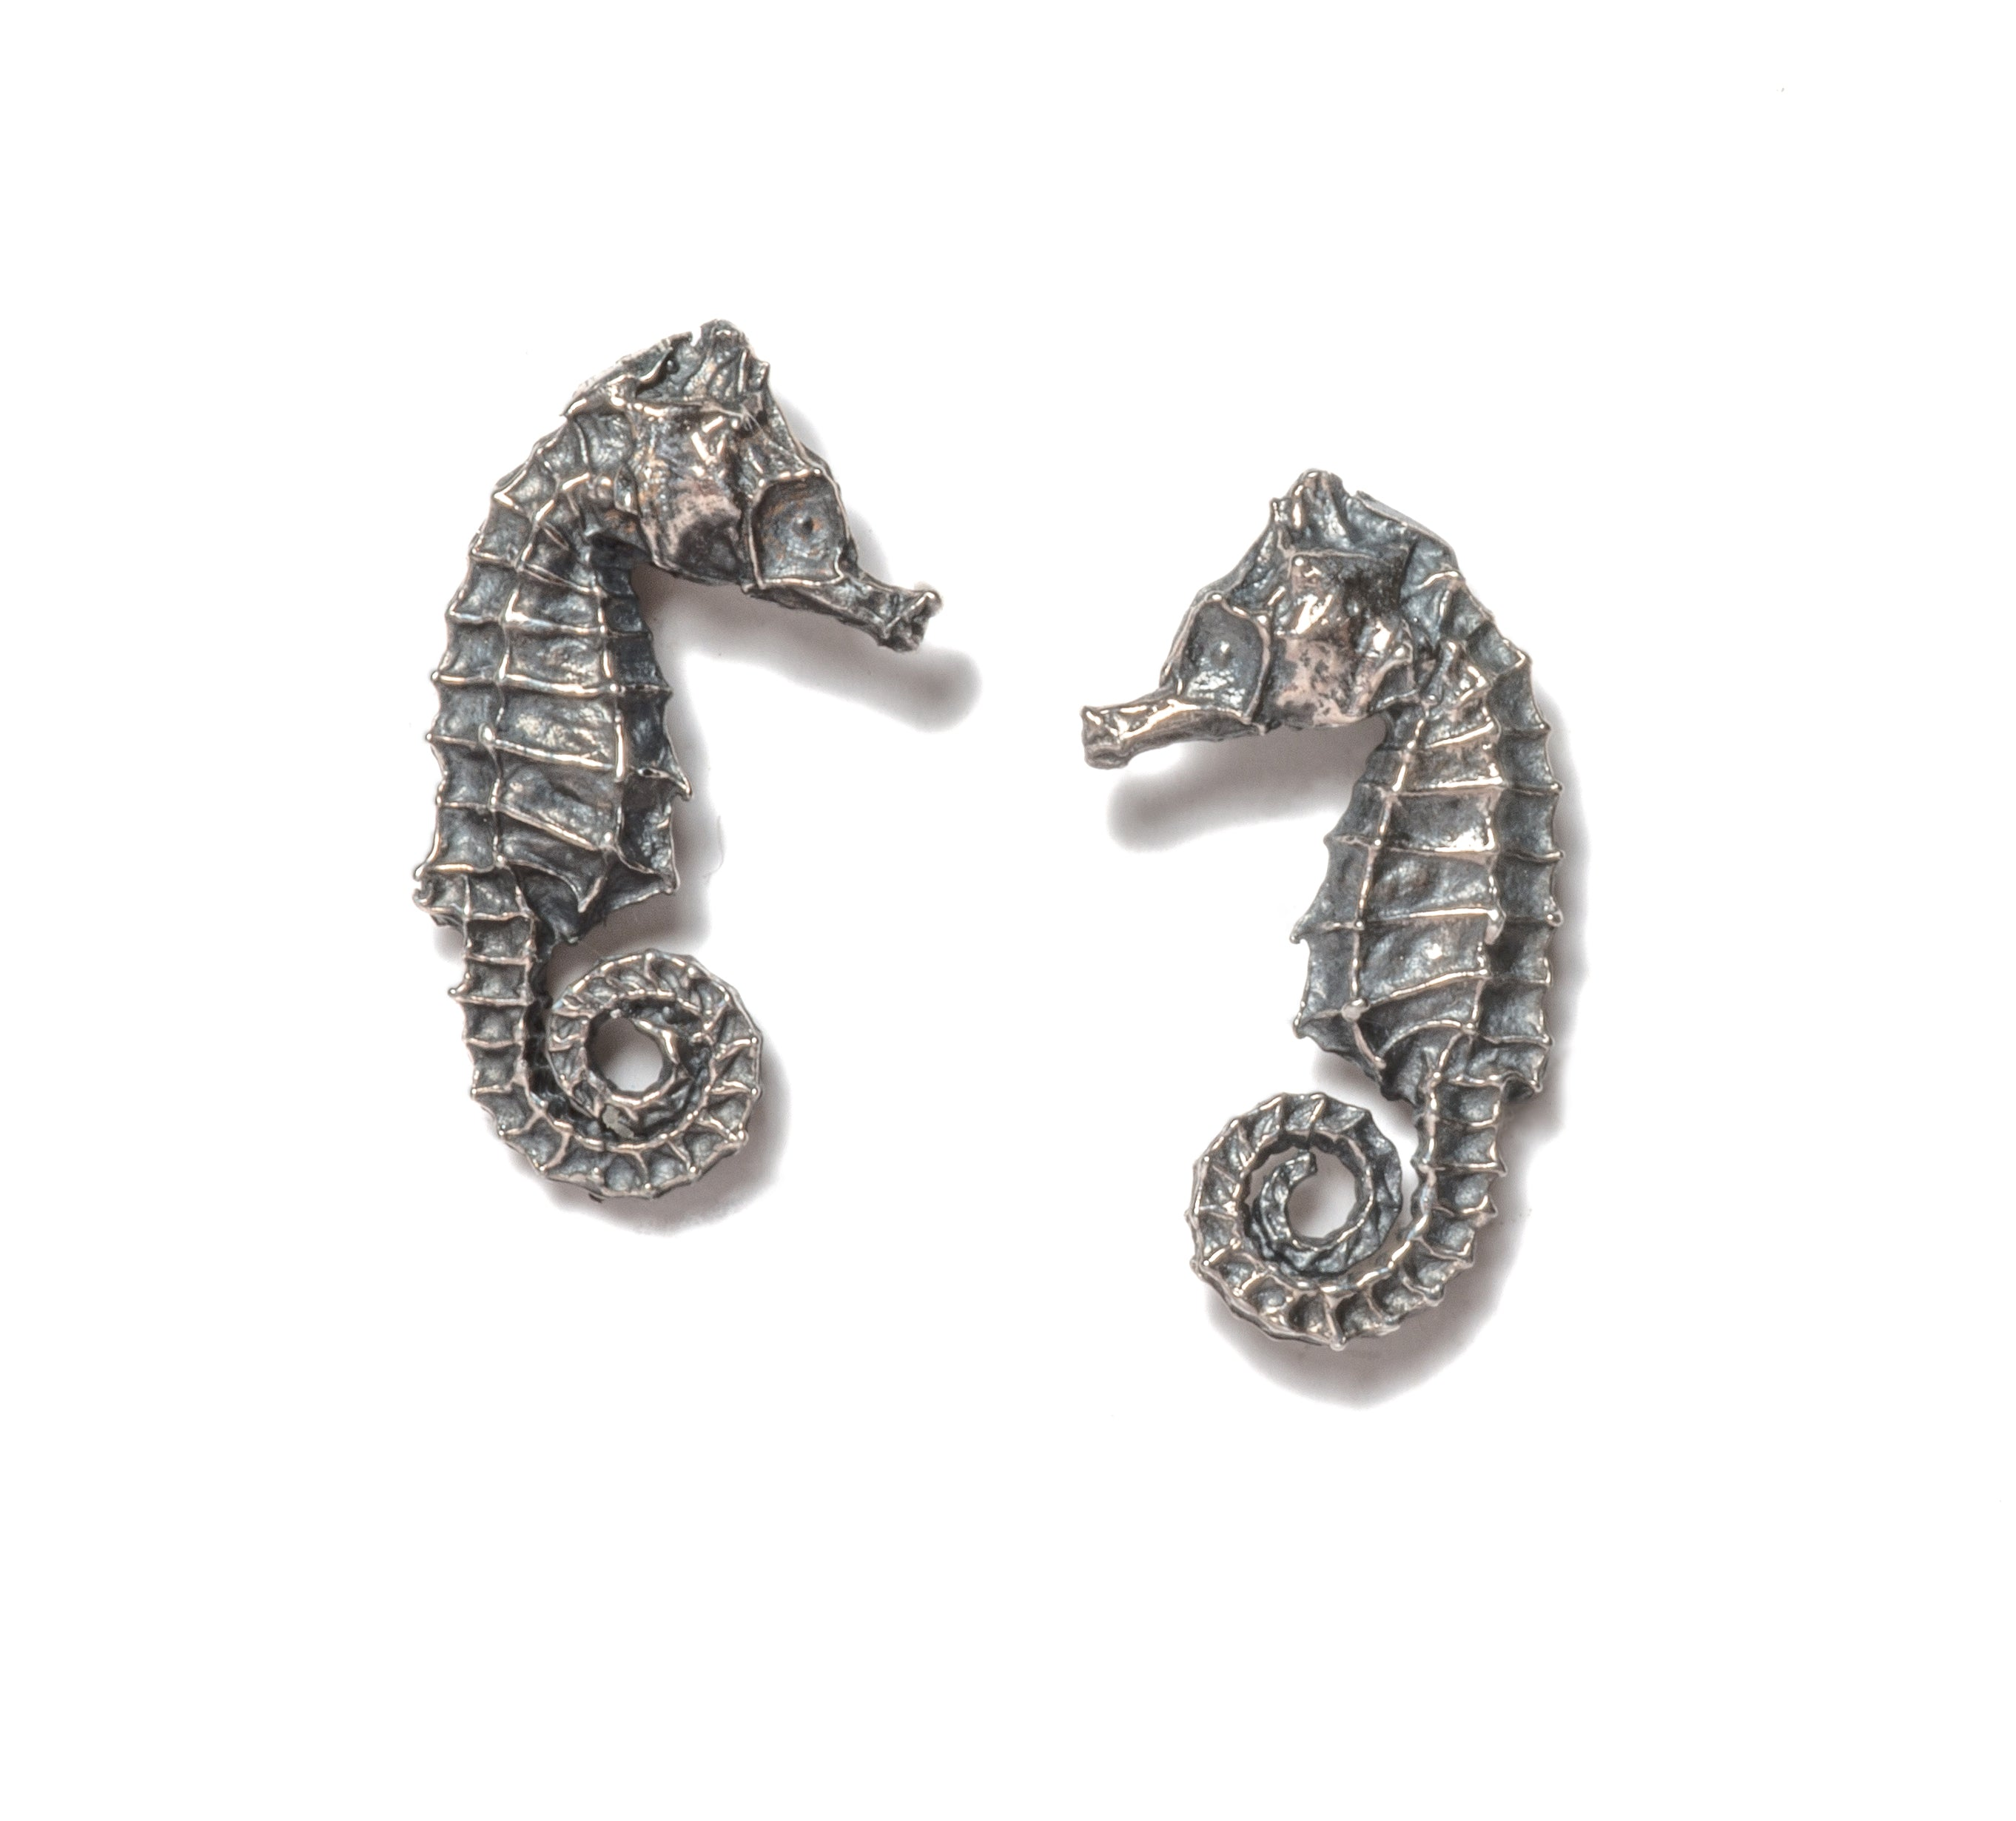 Tiny Seahorse Earrings